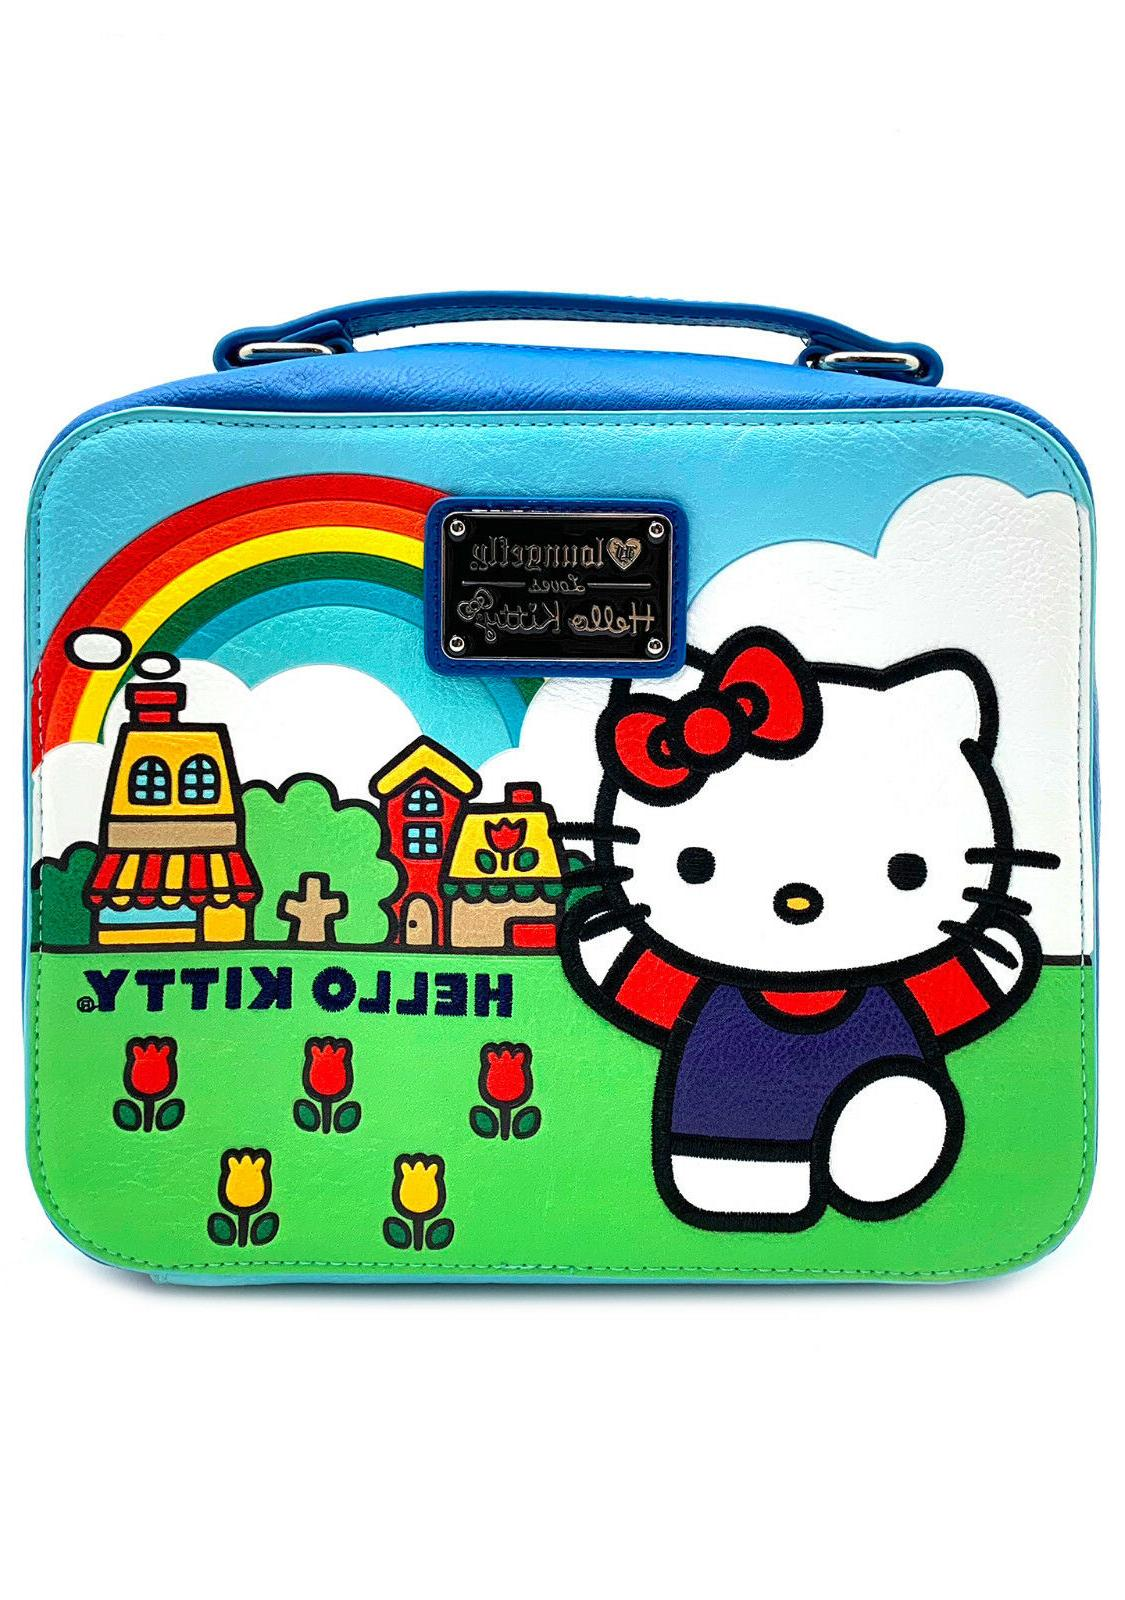 Lunch Bag Hello Kitty Scenery Shaped New santb1589